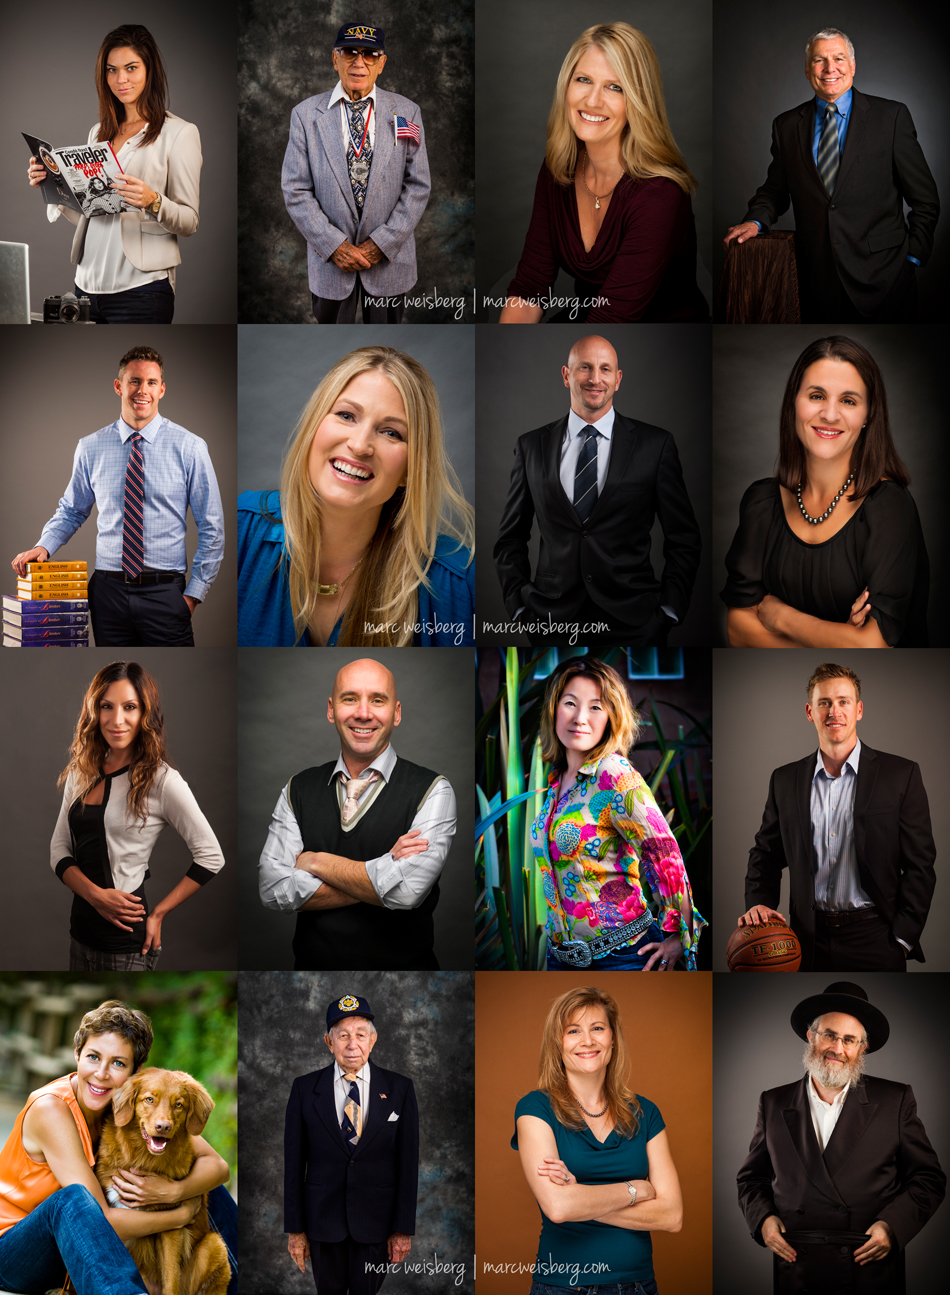 Orange County Headshot Photographer | Executive Portraits